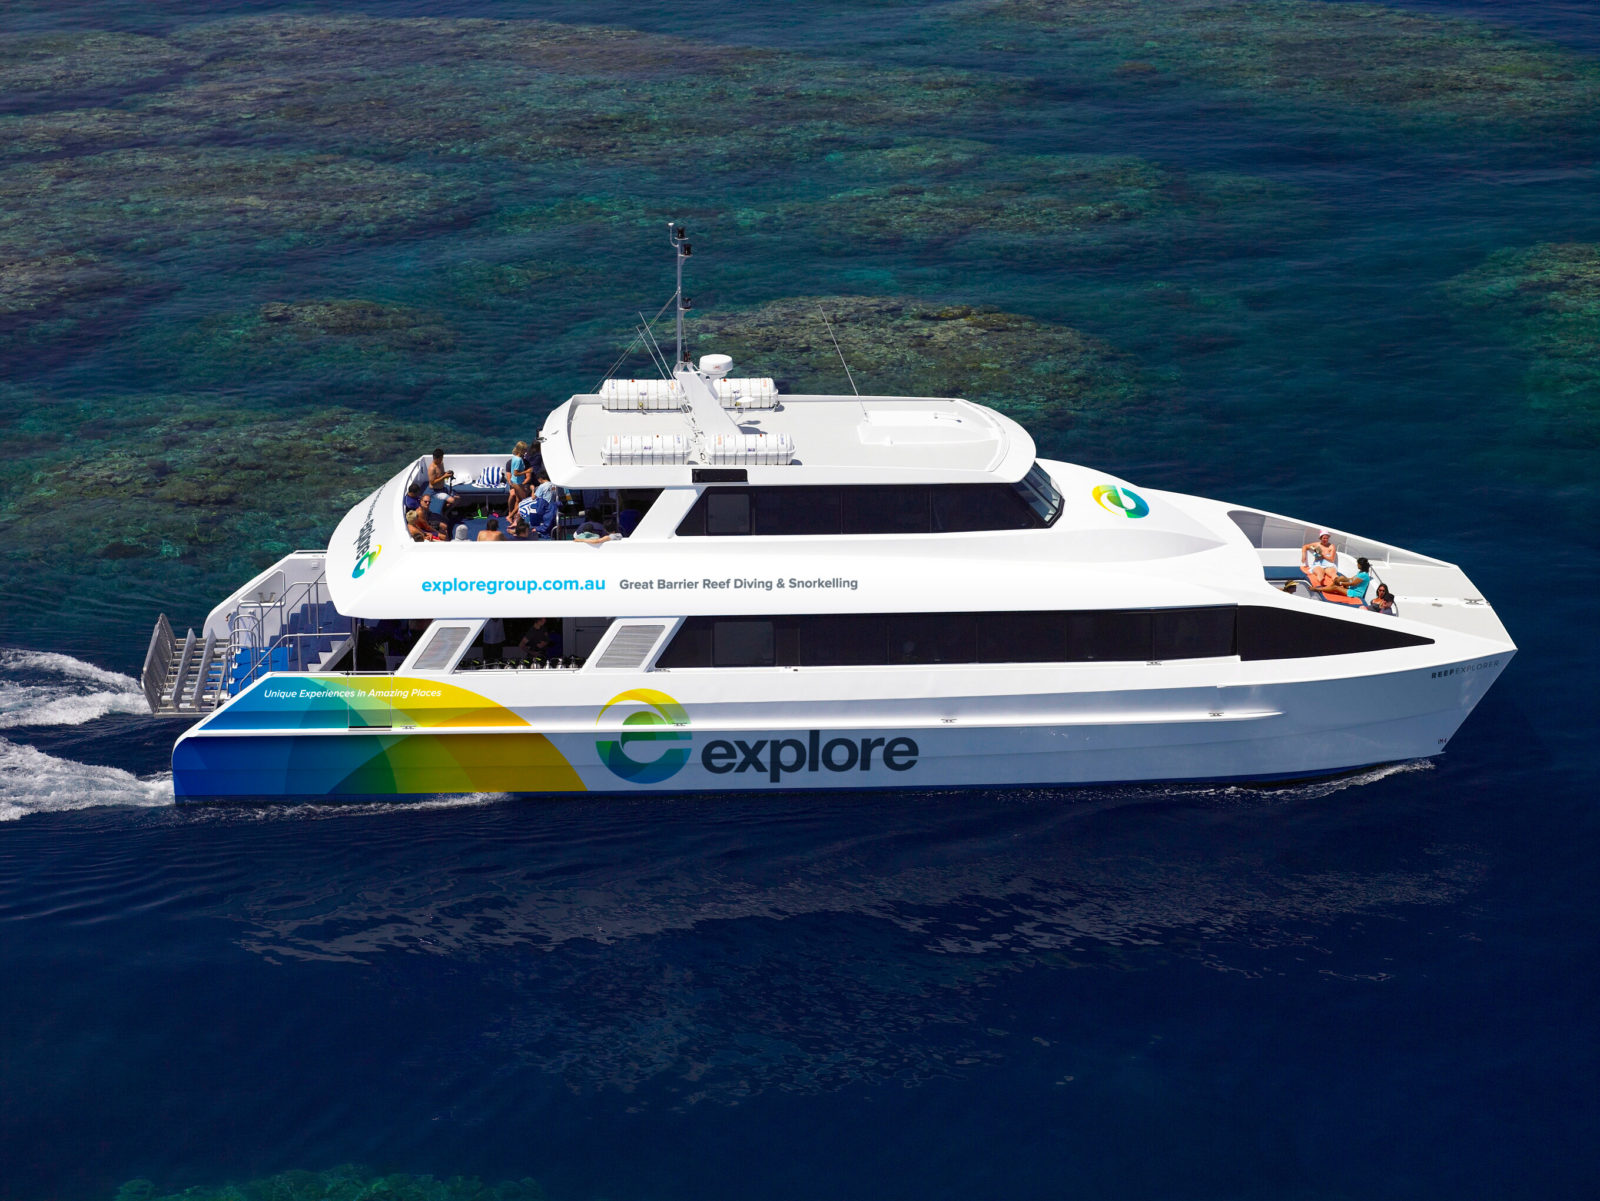 See the world beneath the waves and dive at one of the most famous reefs – The Great Barrier. One of